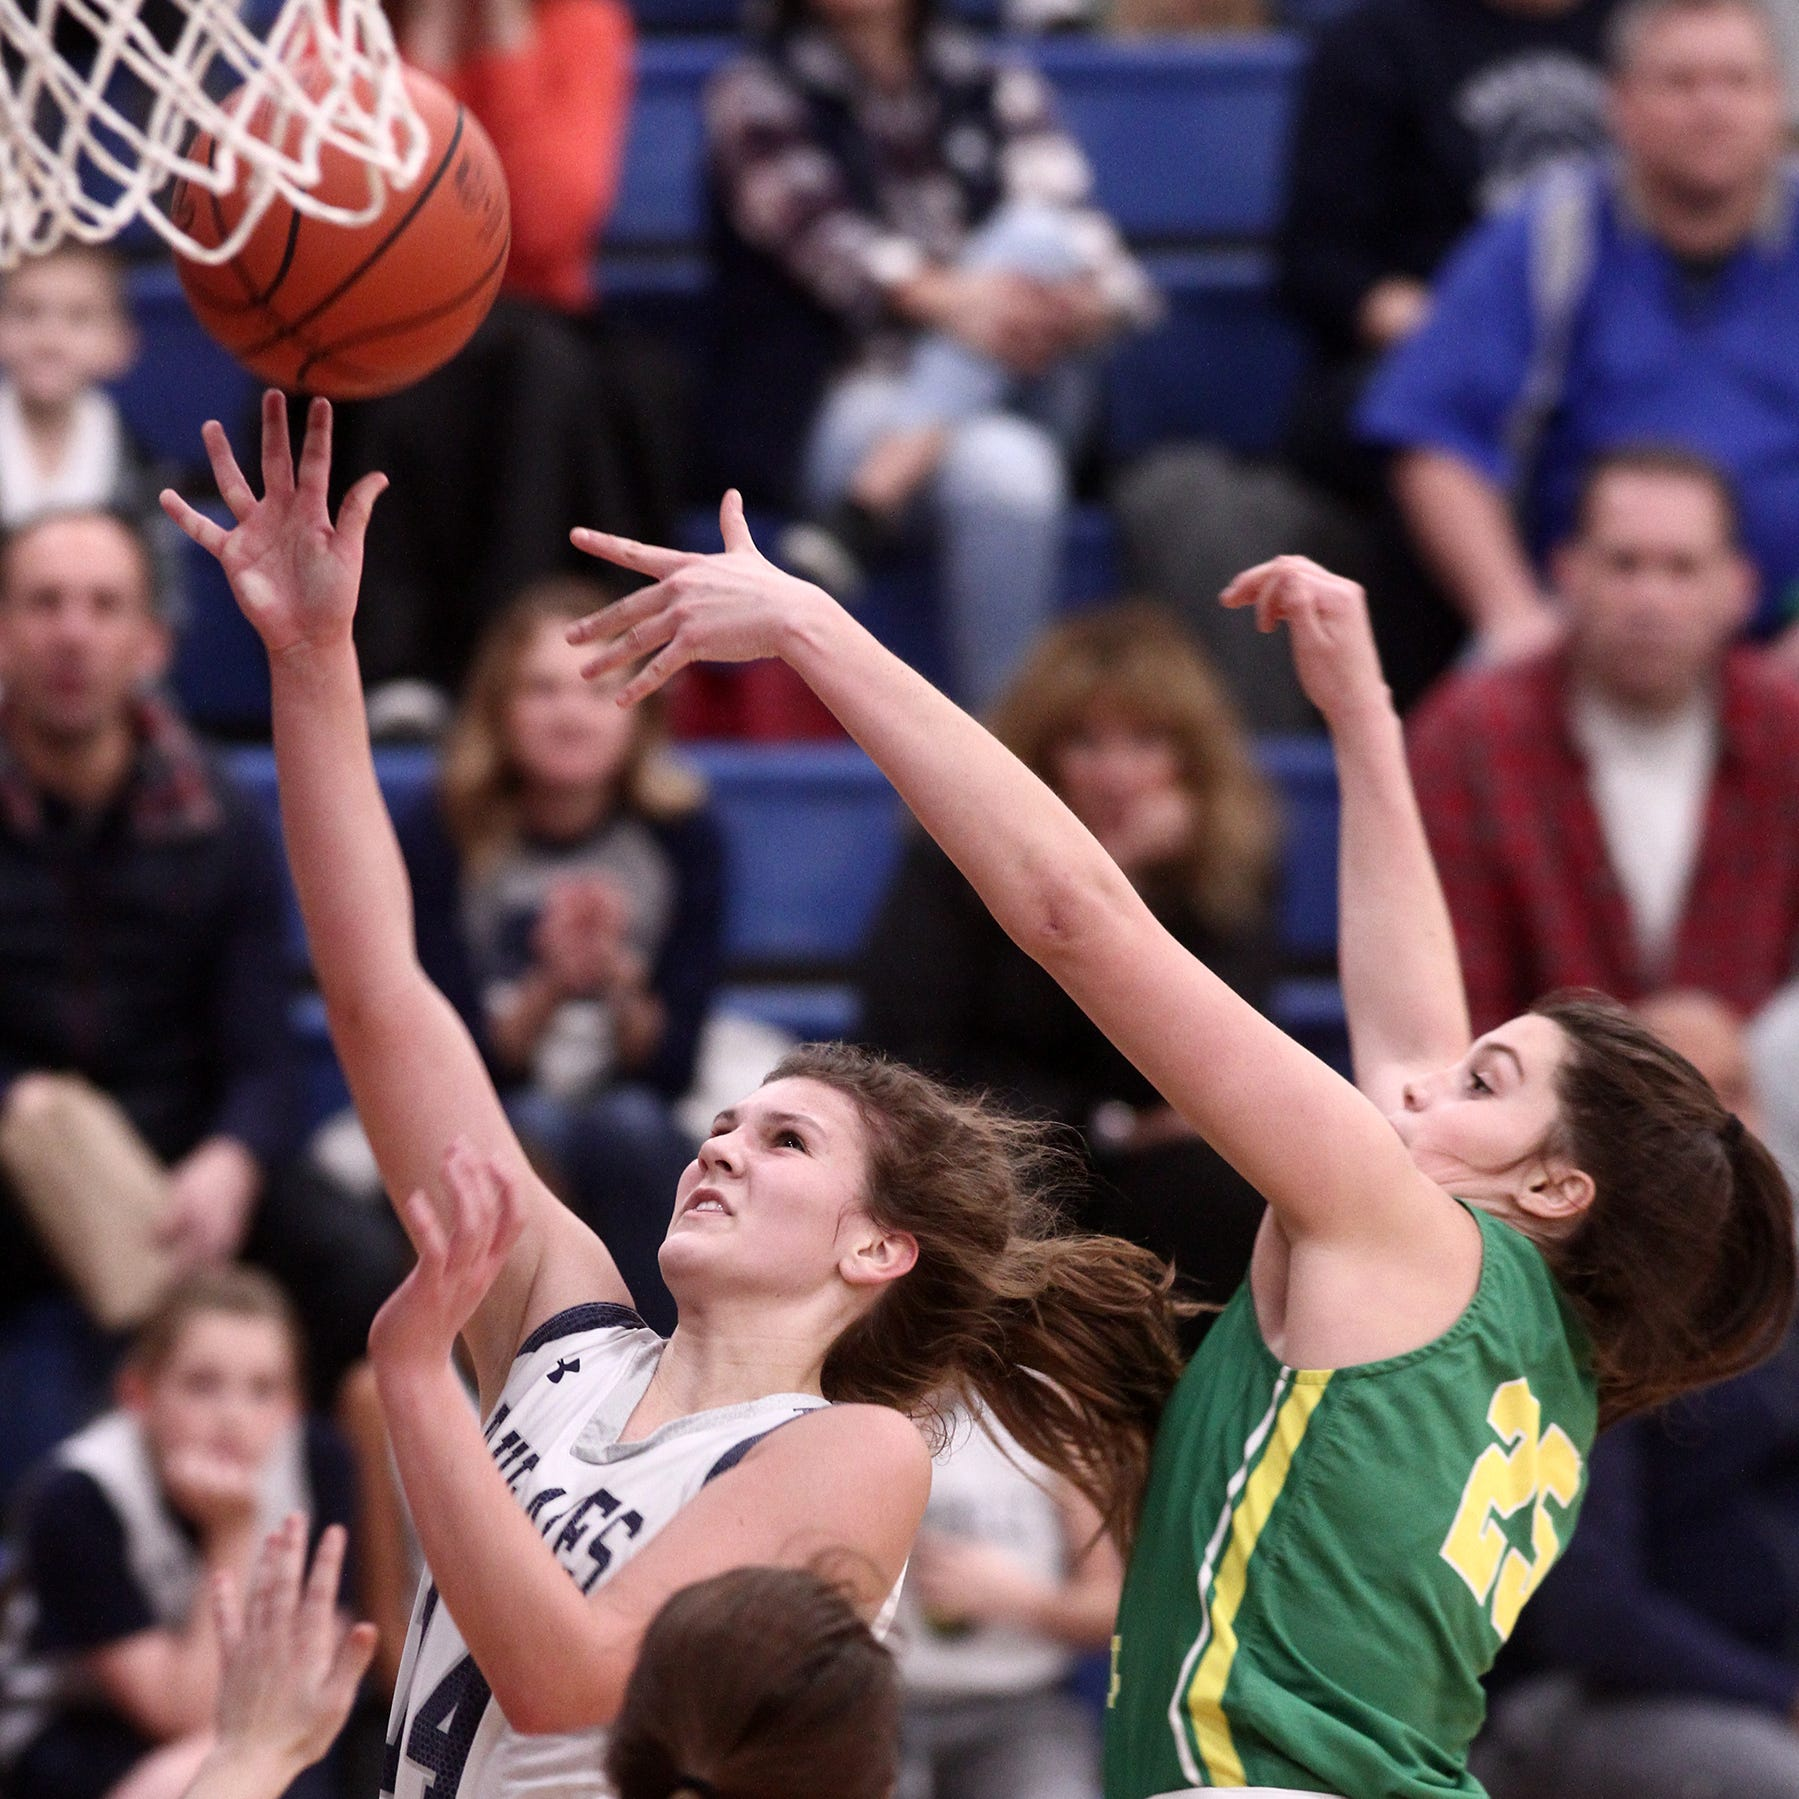 Granville girls knock down shots, knock off Newark Catholic